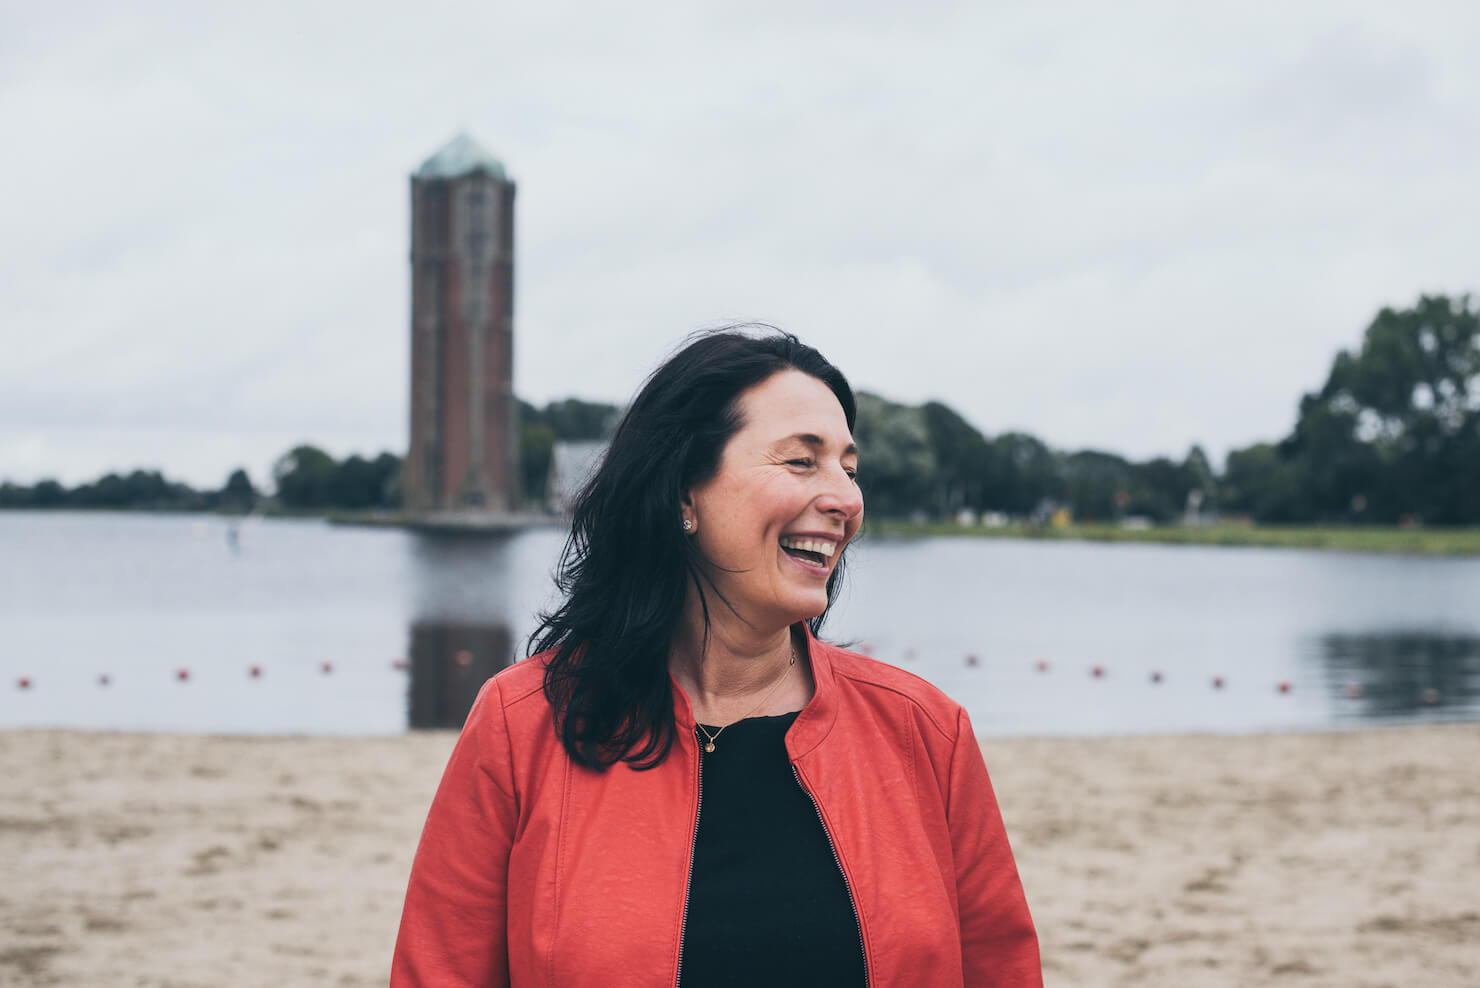 Anna-Maria is totally in love with Aalsmeer